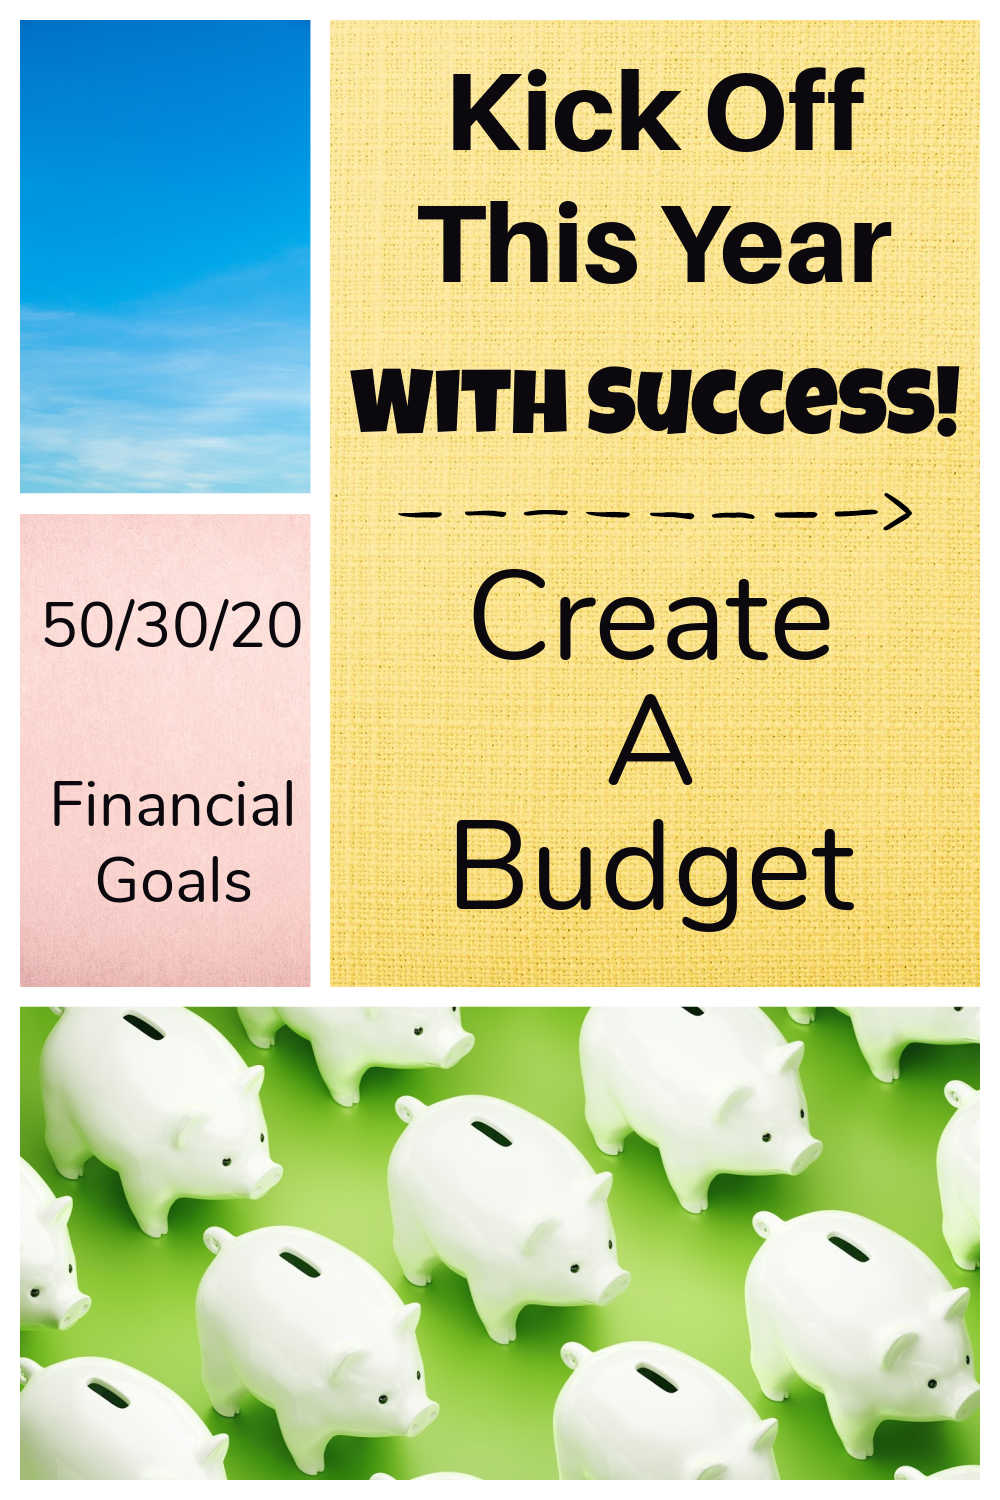 How to Set Up a Budget {the 50/30/20 Way}